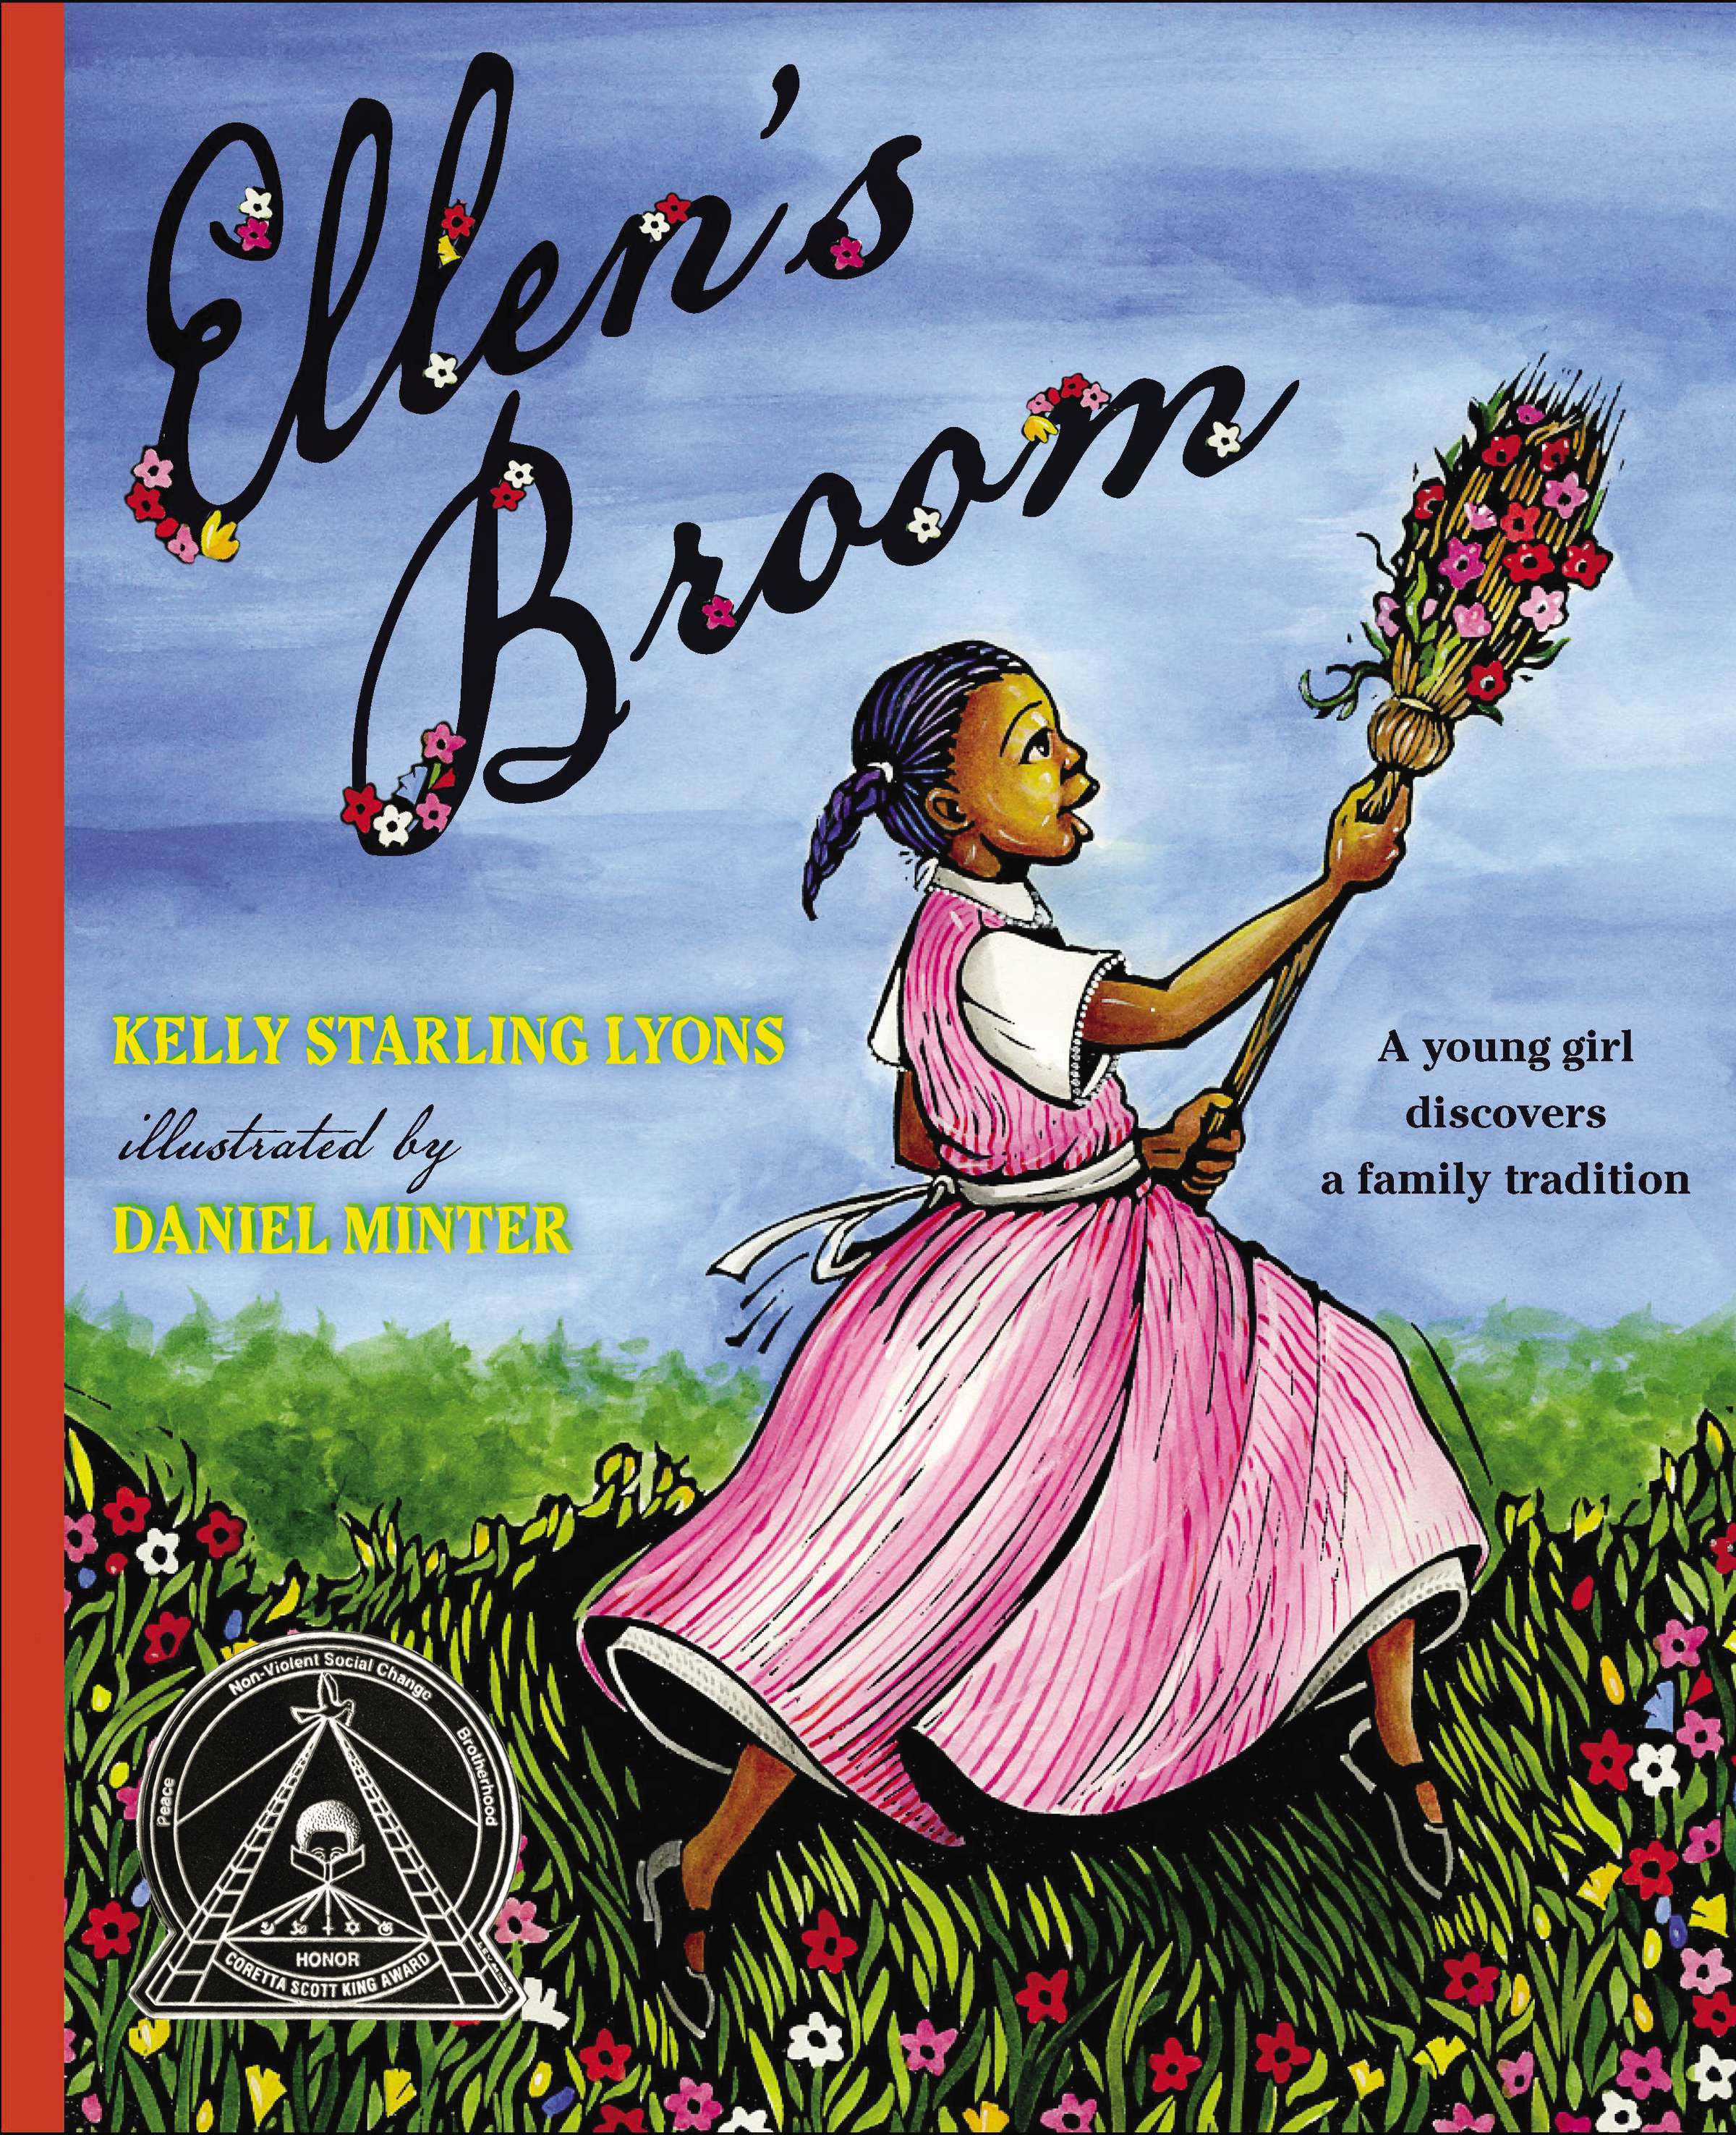 Ellen's Broom (Book) | Zinn Education Project